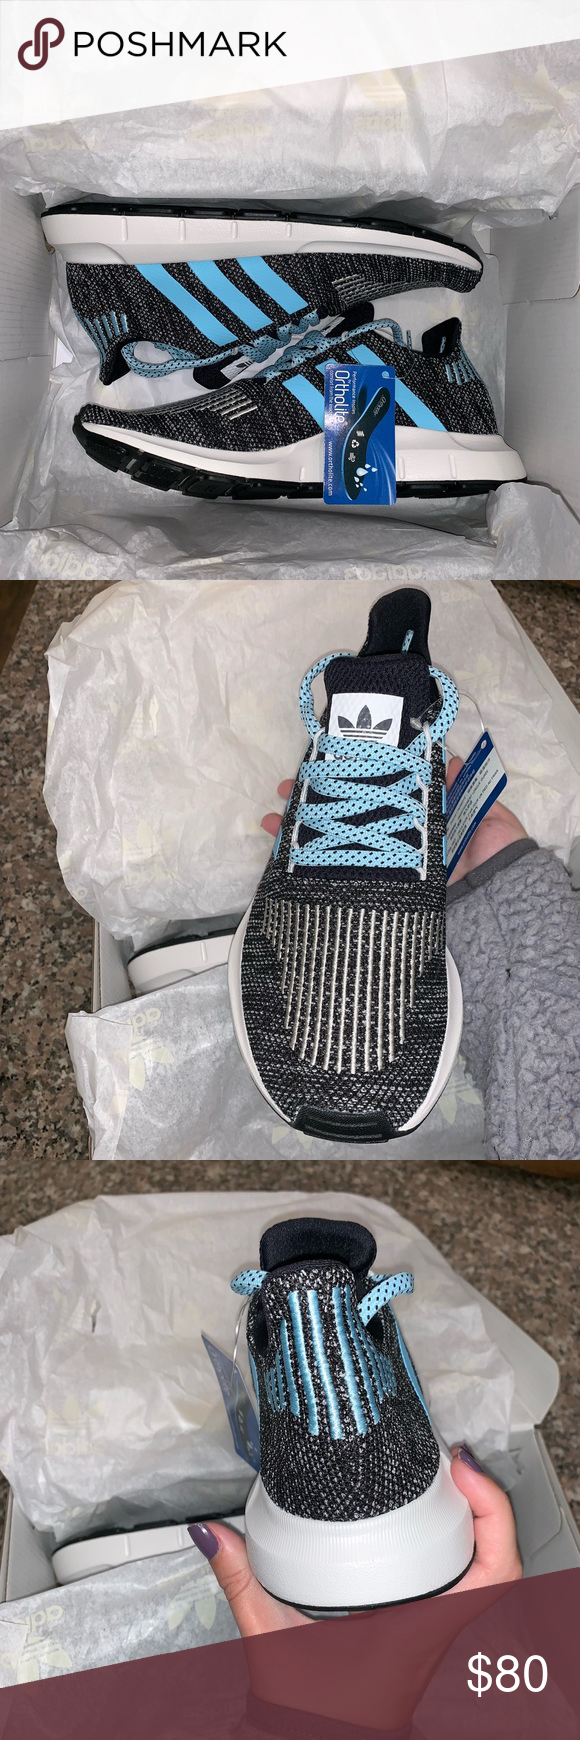 503d7afb778ac Mi Adidas Swift run- icy blue Mi adidas swift run tennis shoes with icy blue  details! Never been worn